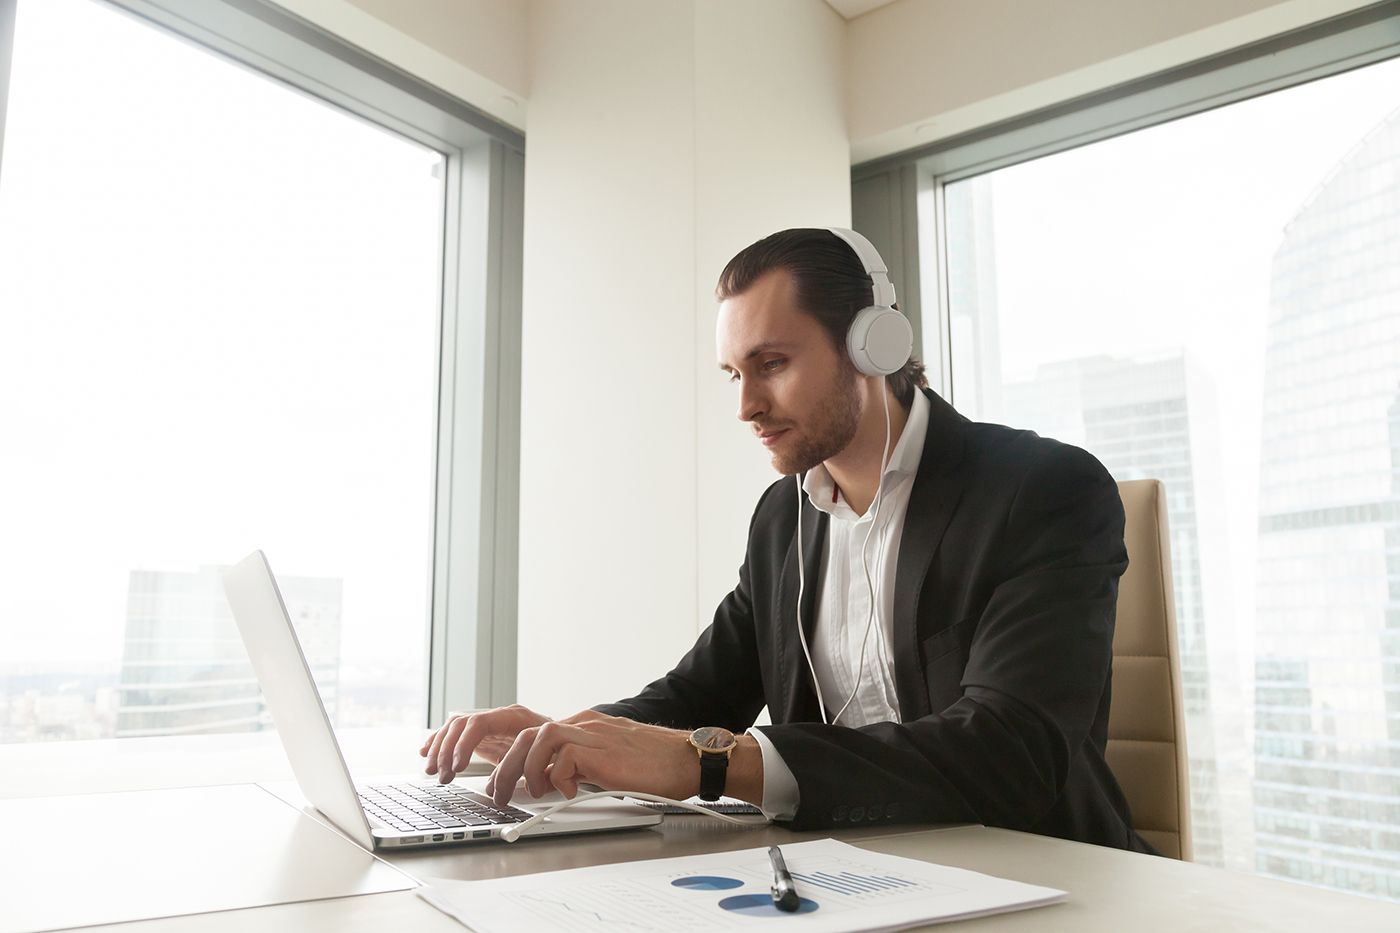 Video conferencing managed services are an excellent value-add for a MSP's suite of offerings.